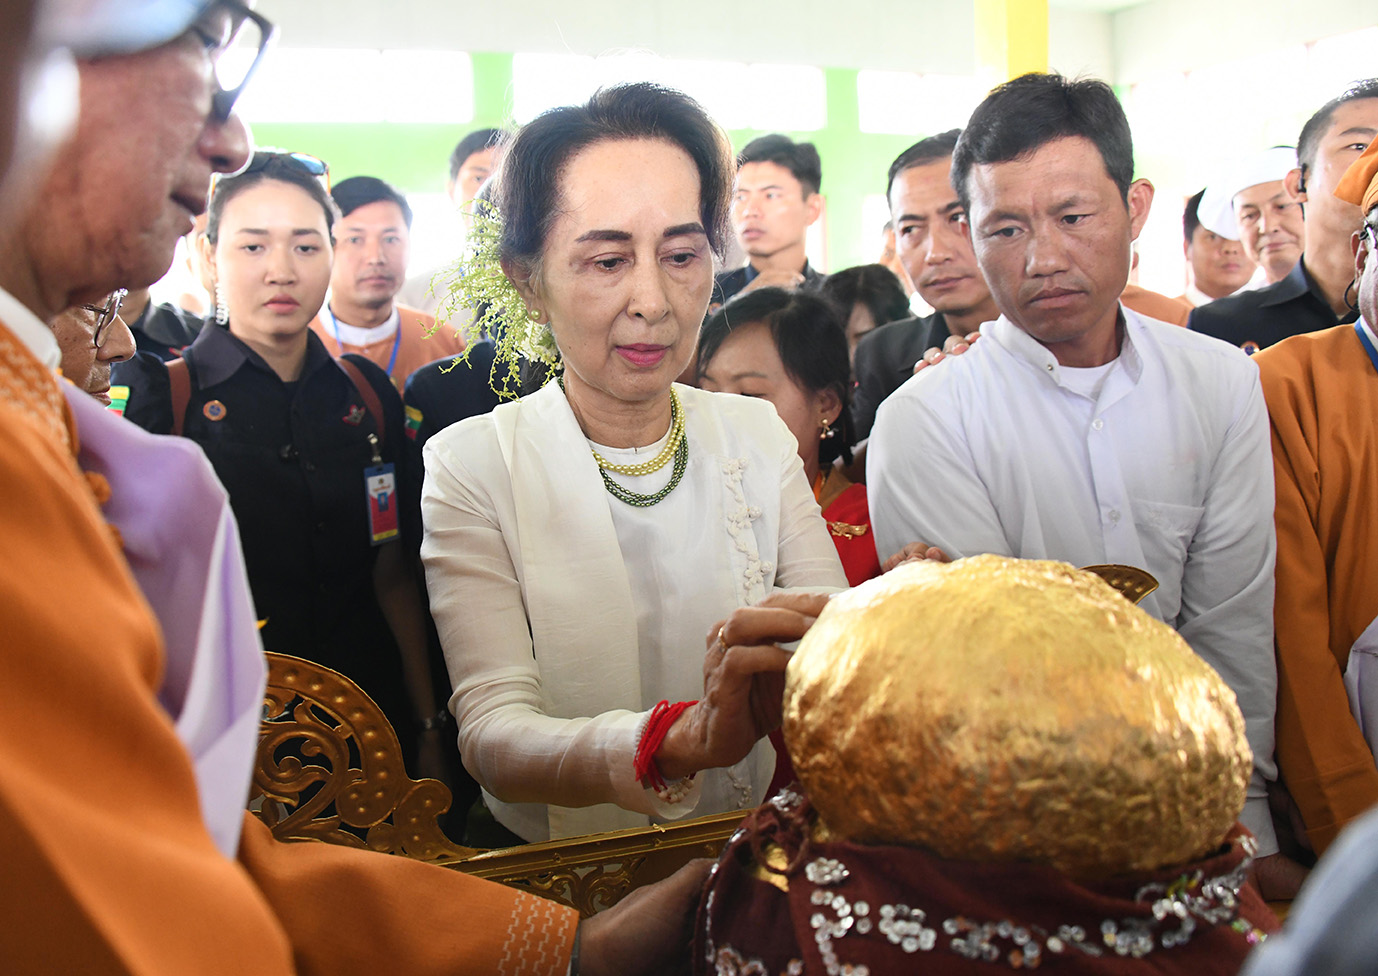 State Counsellor Daw Aung San Suu Kyi applies gold leaves to the Inle Phaungdaw Oo Buddha Image. Photo: MNA